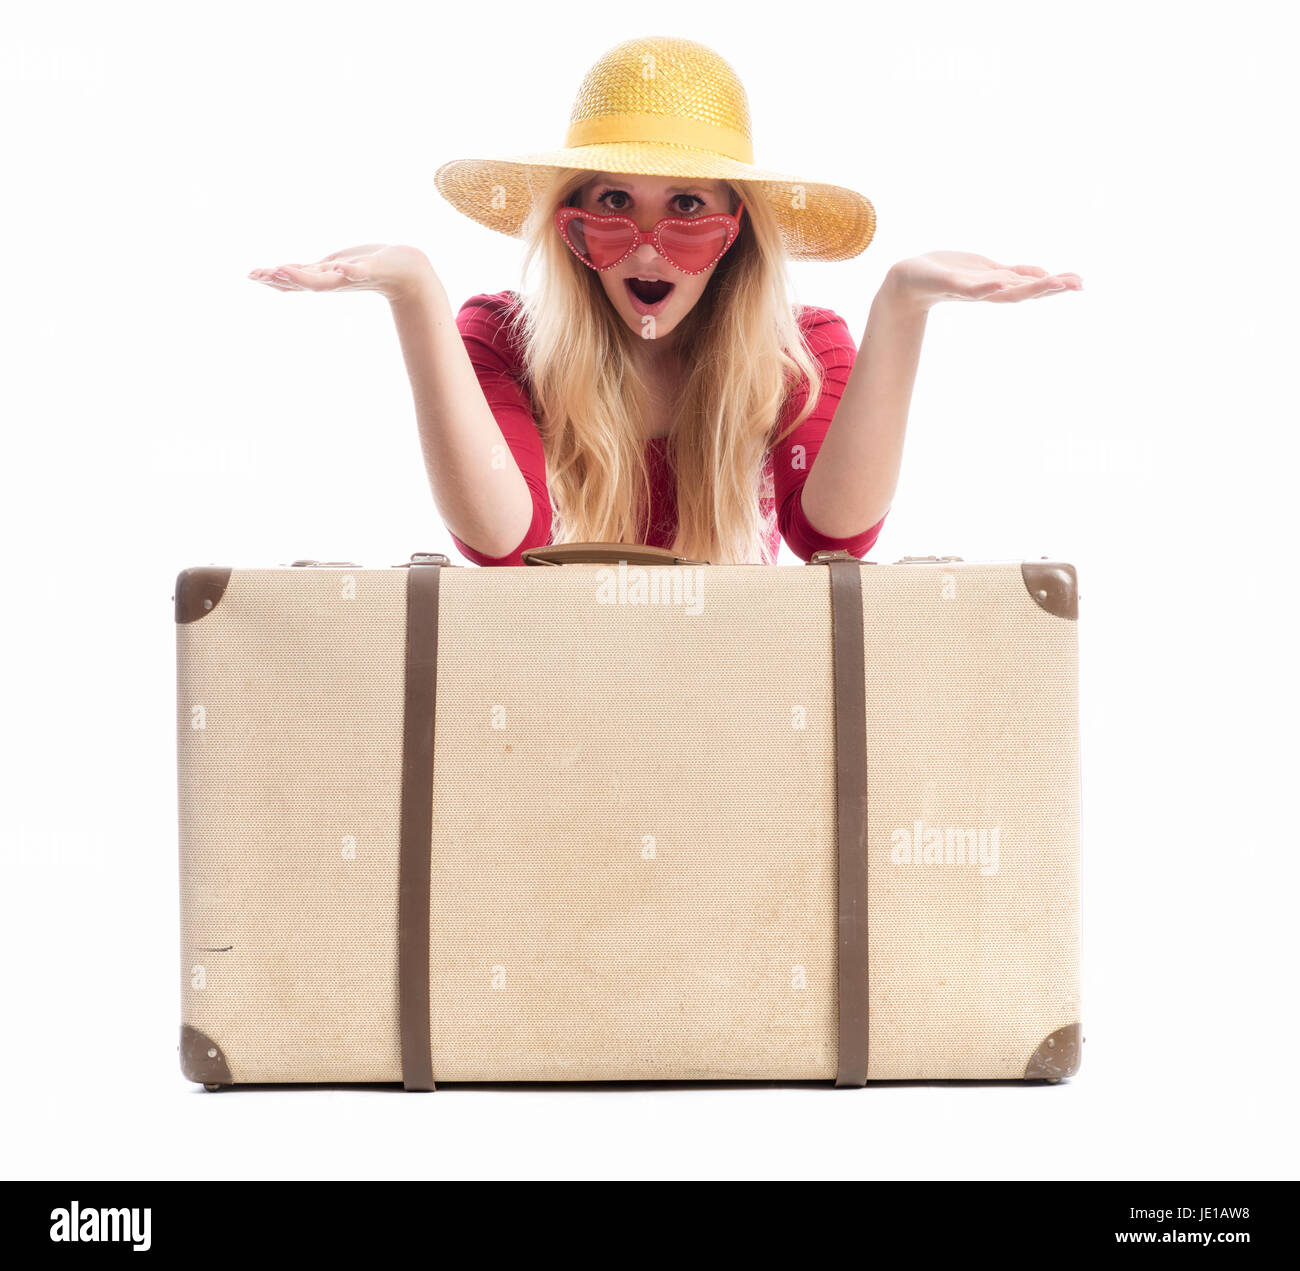 astonished woman with suitcase - Stock Image